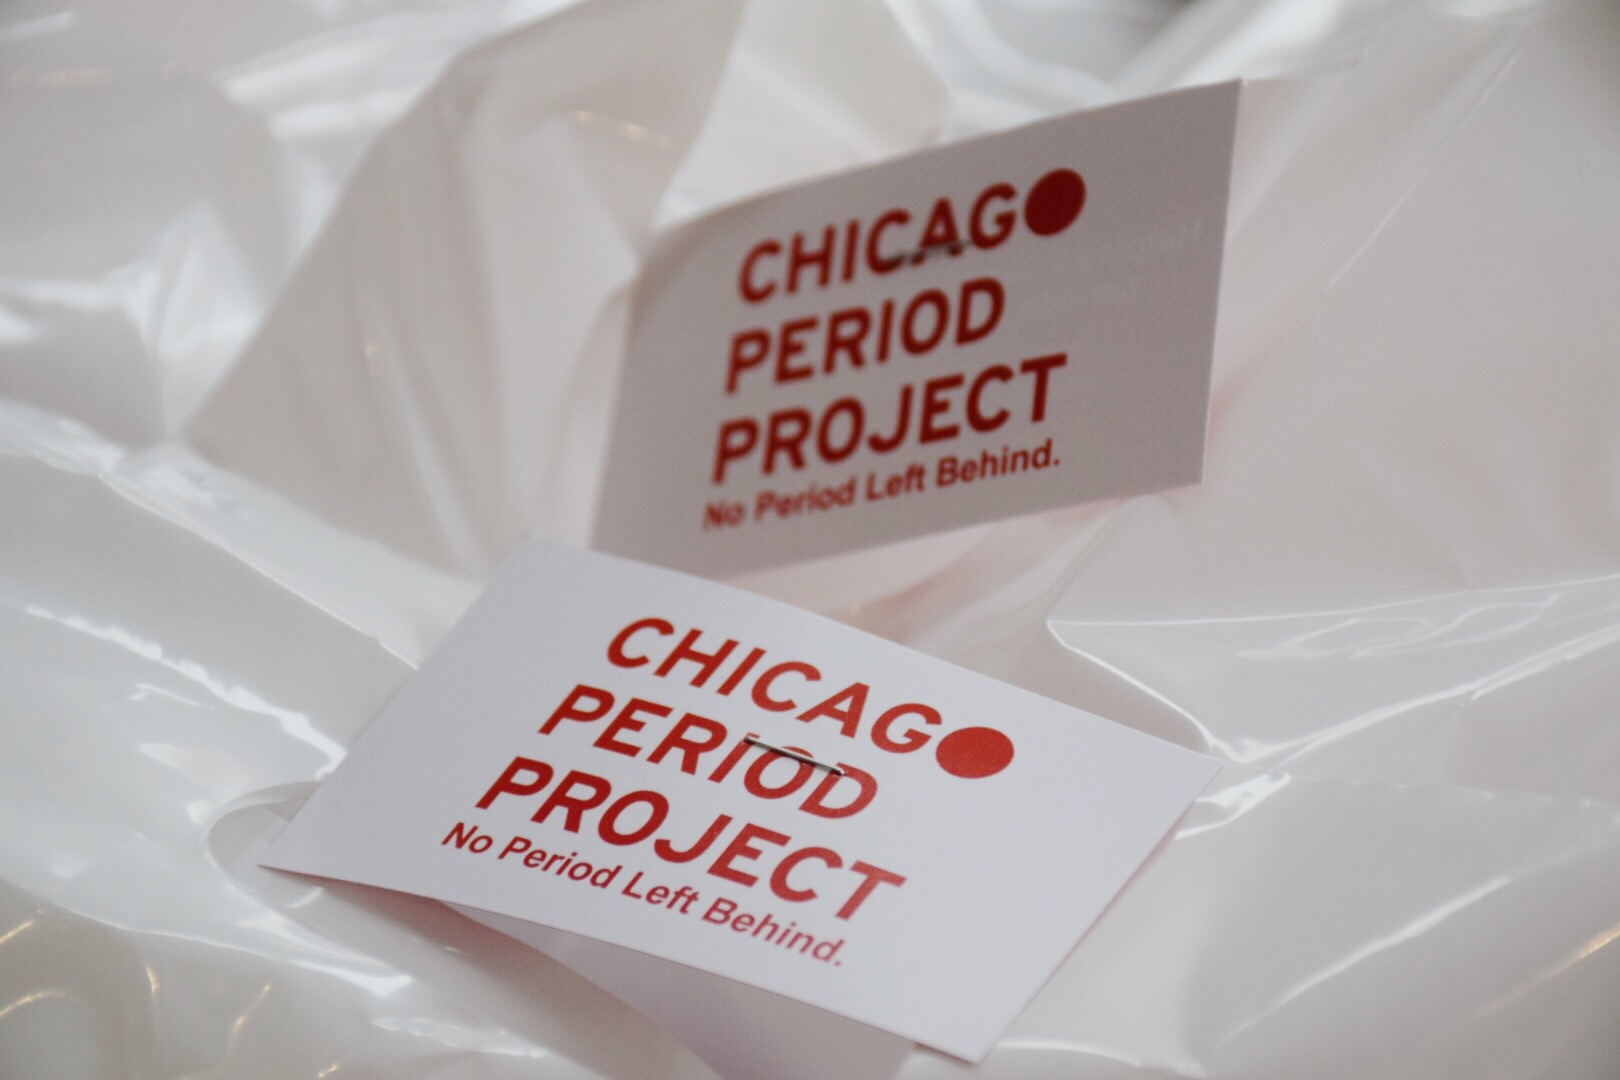 CHICAGO PERIOD PROJECT